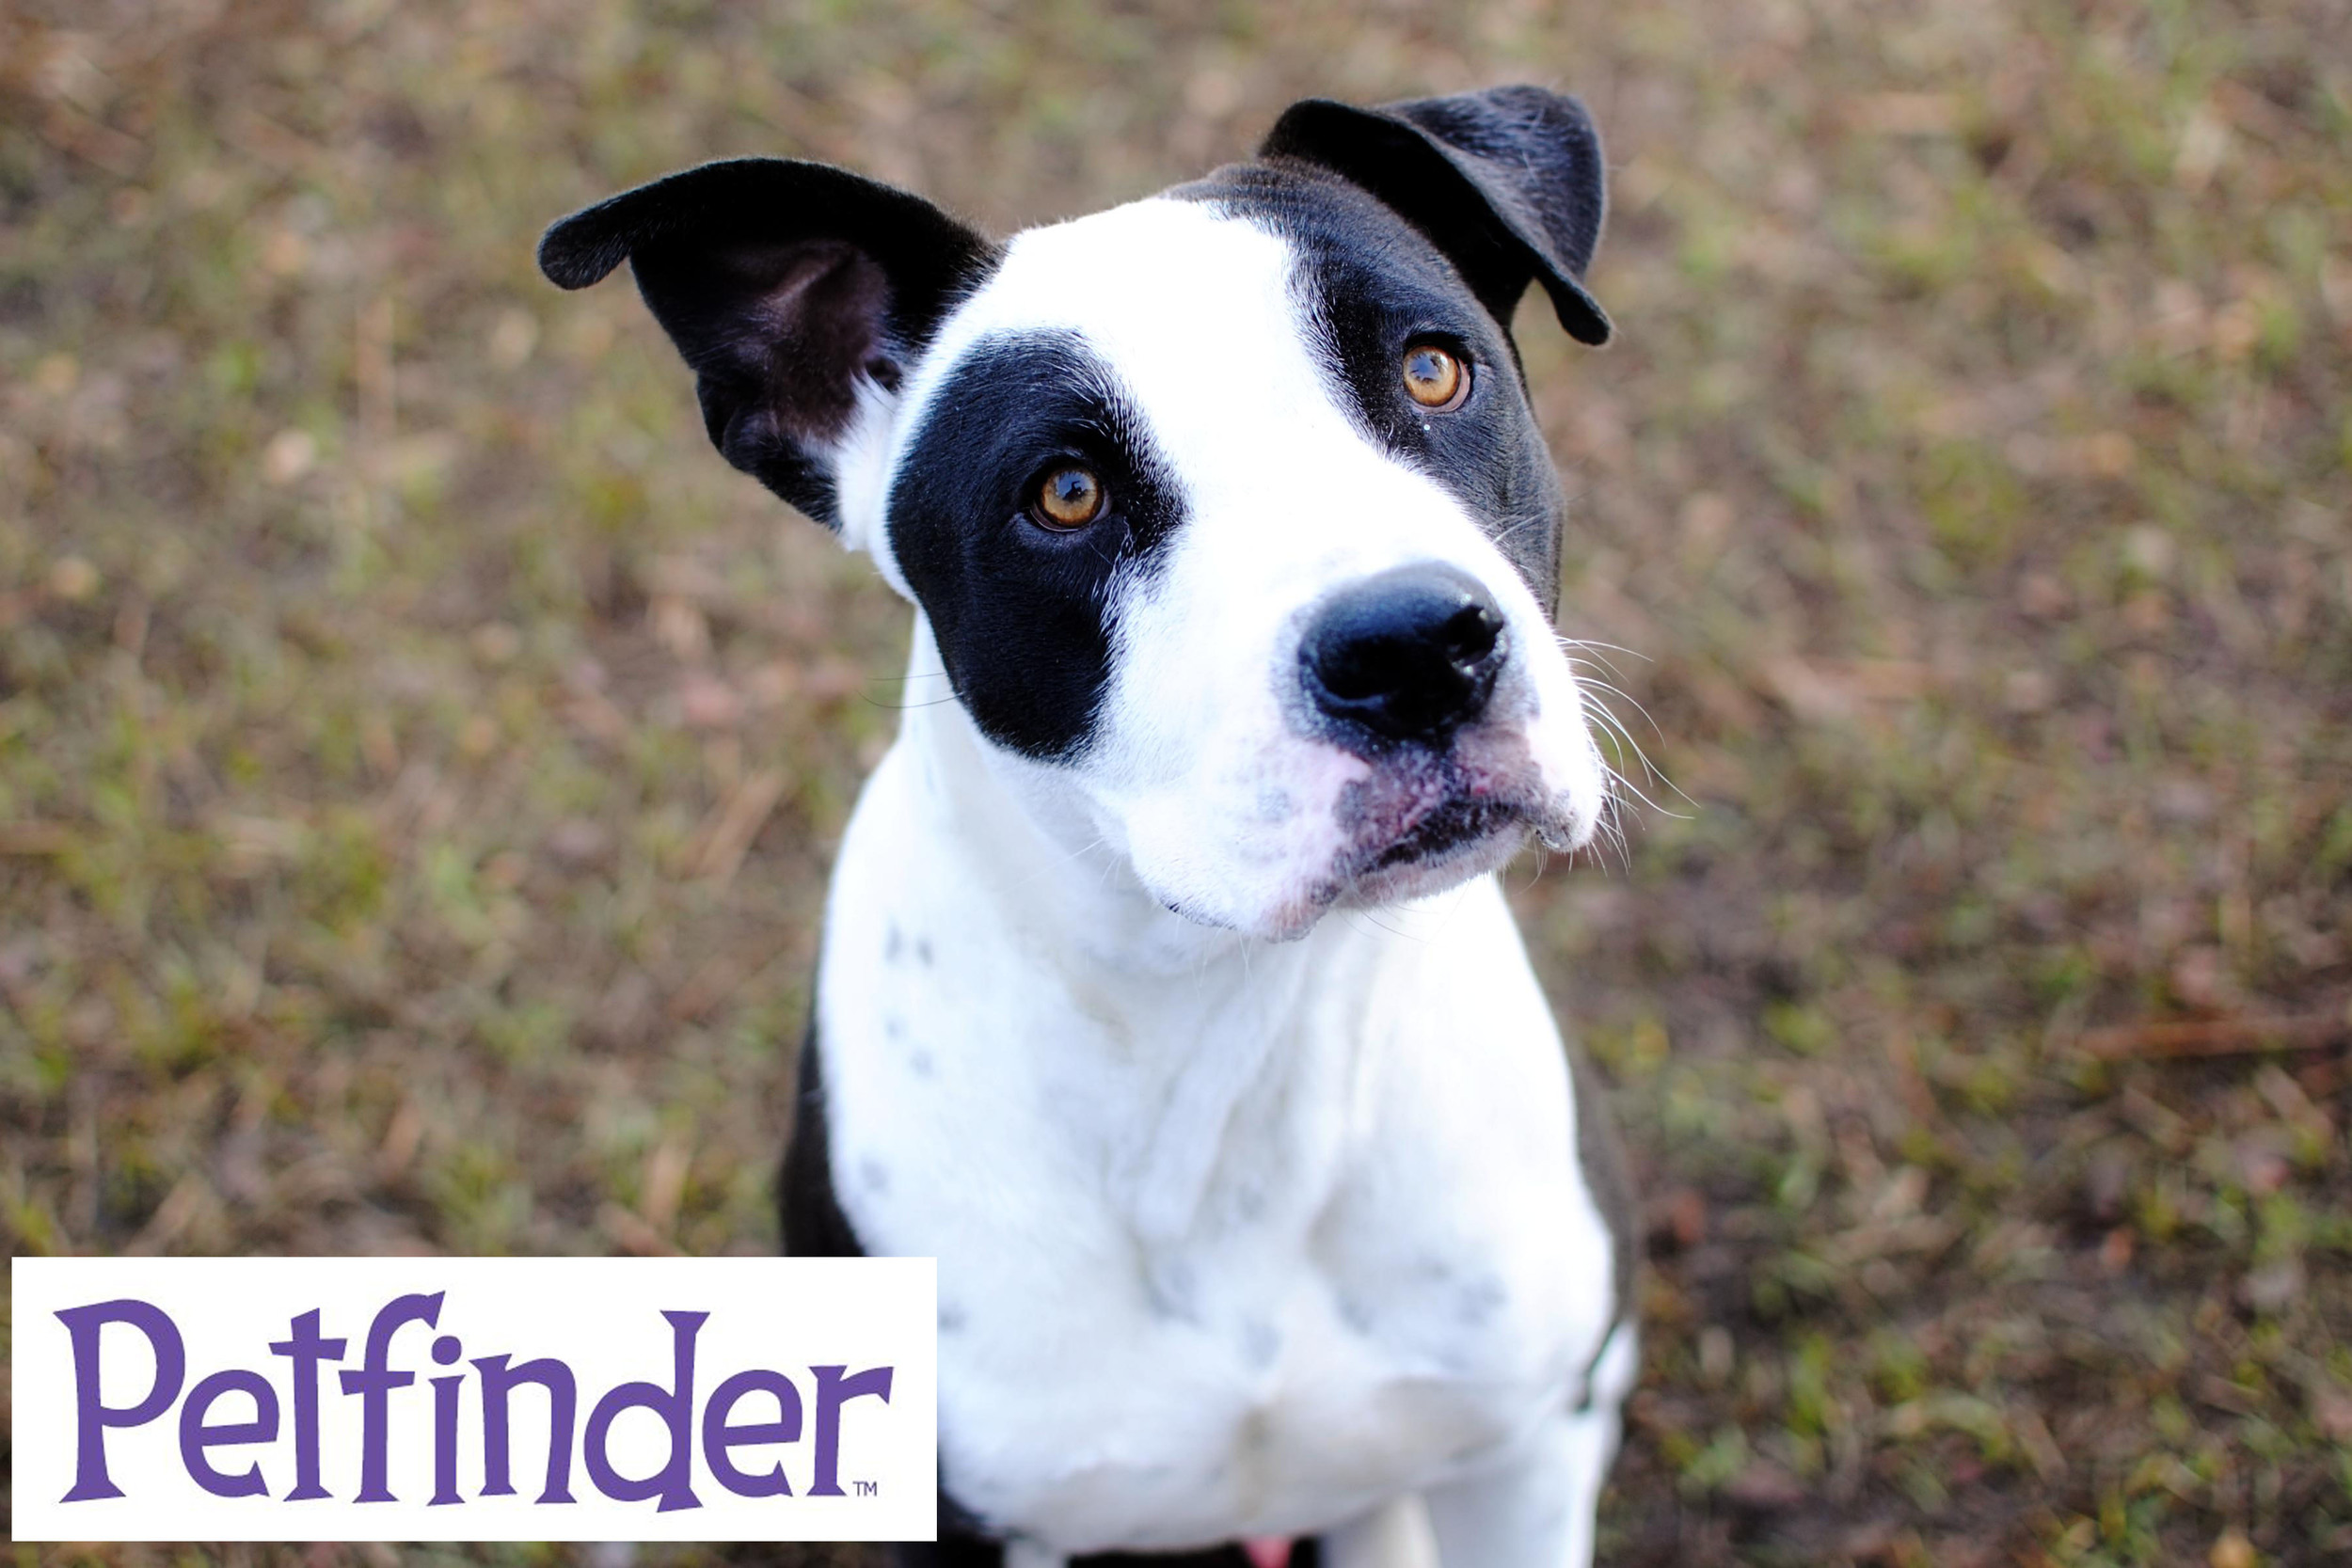 Many of our shelter animals are currently in foster care, you can check them out here and contact their foster parents directly to schedule a meet and greet!